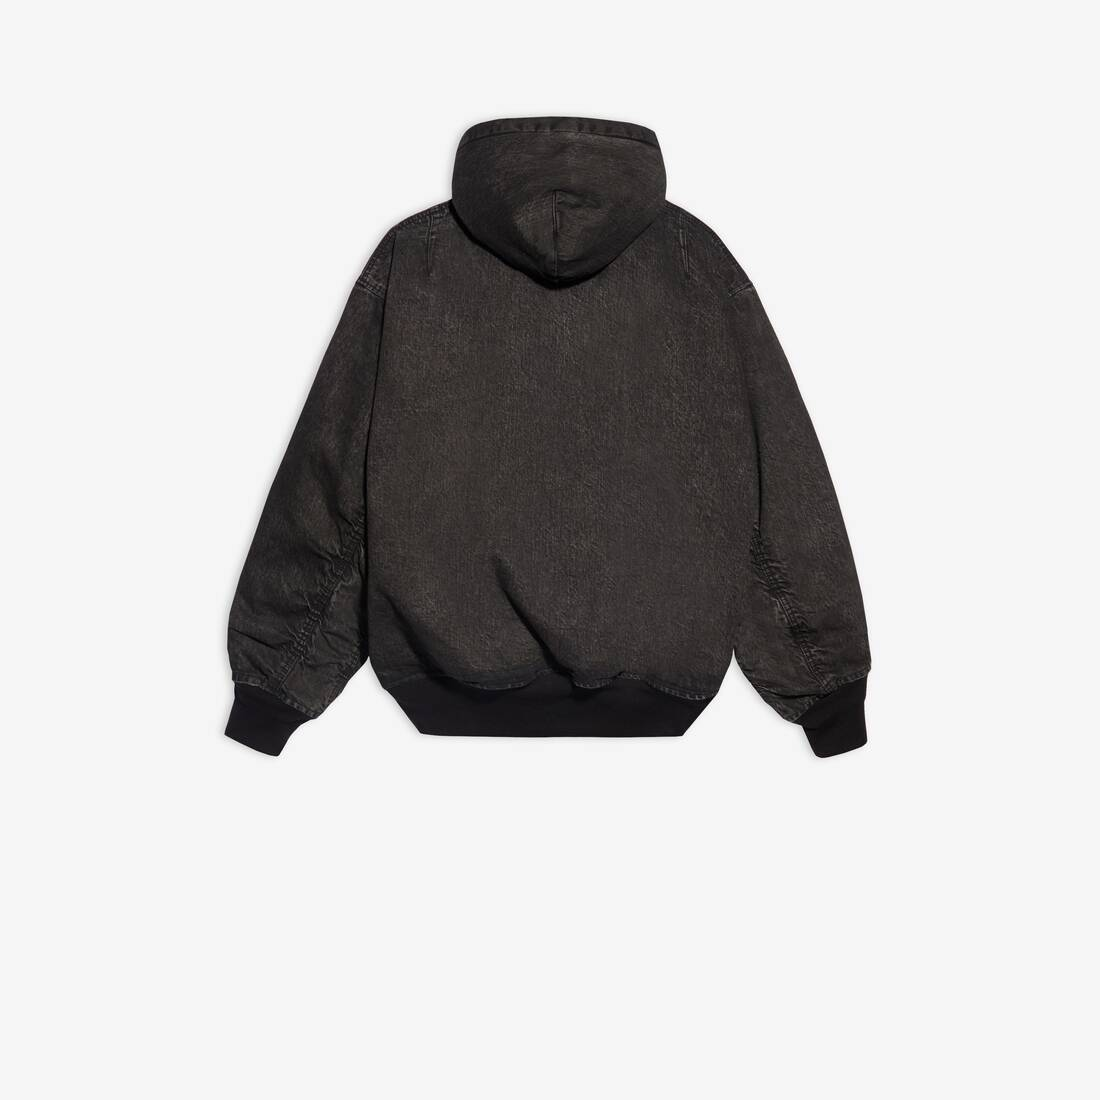 Display zoomed version of hooded bomber 2